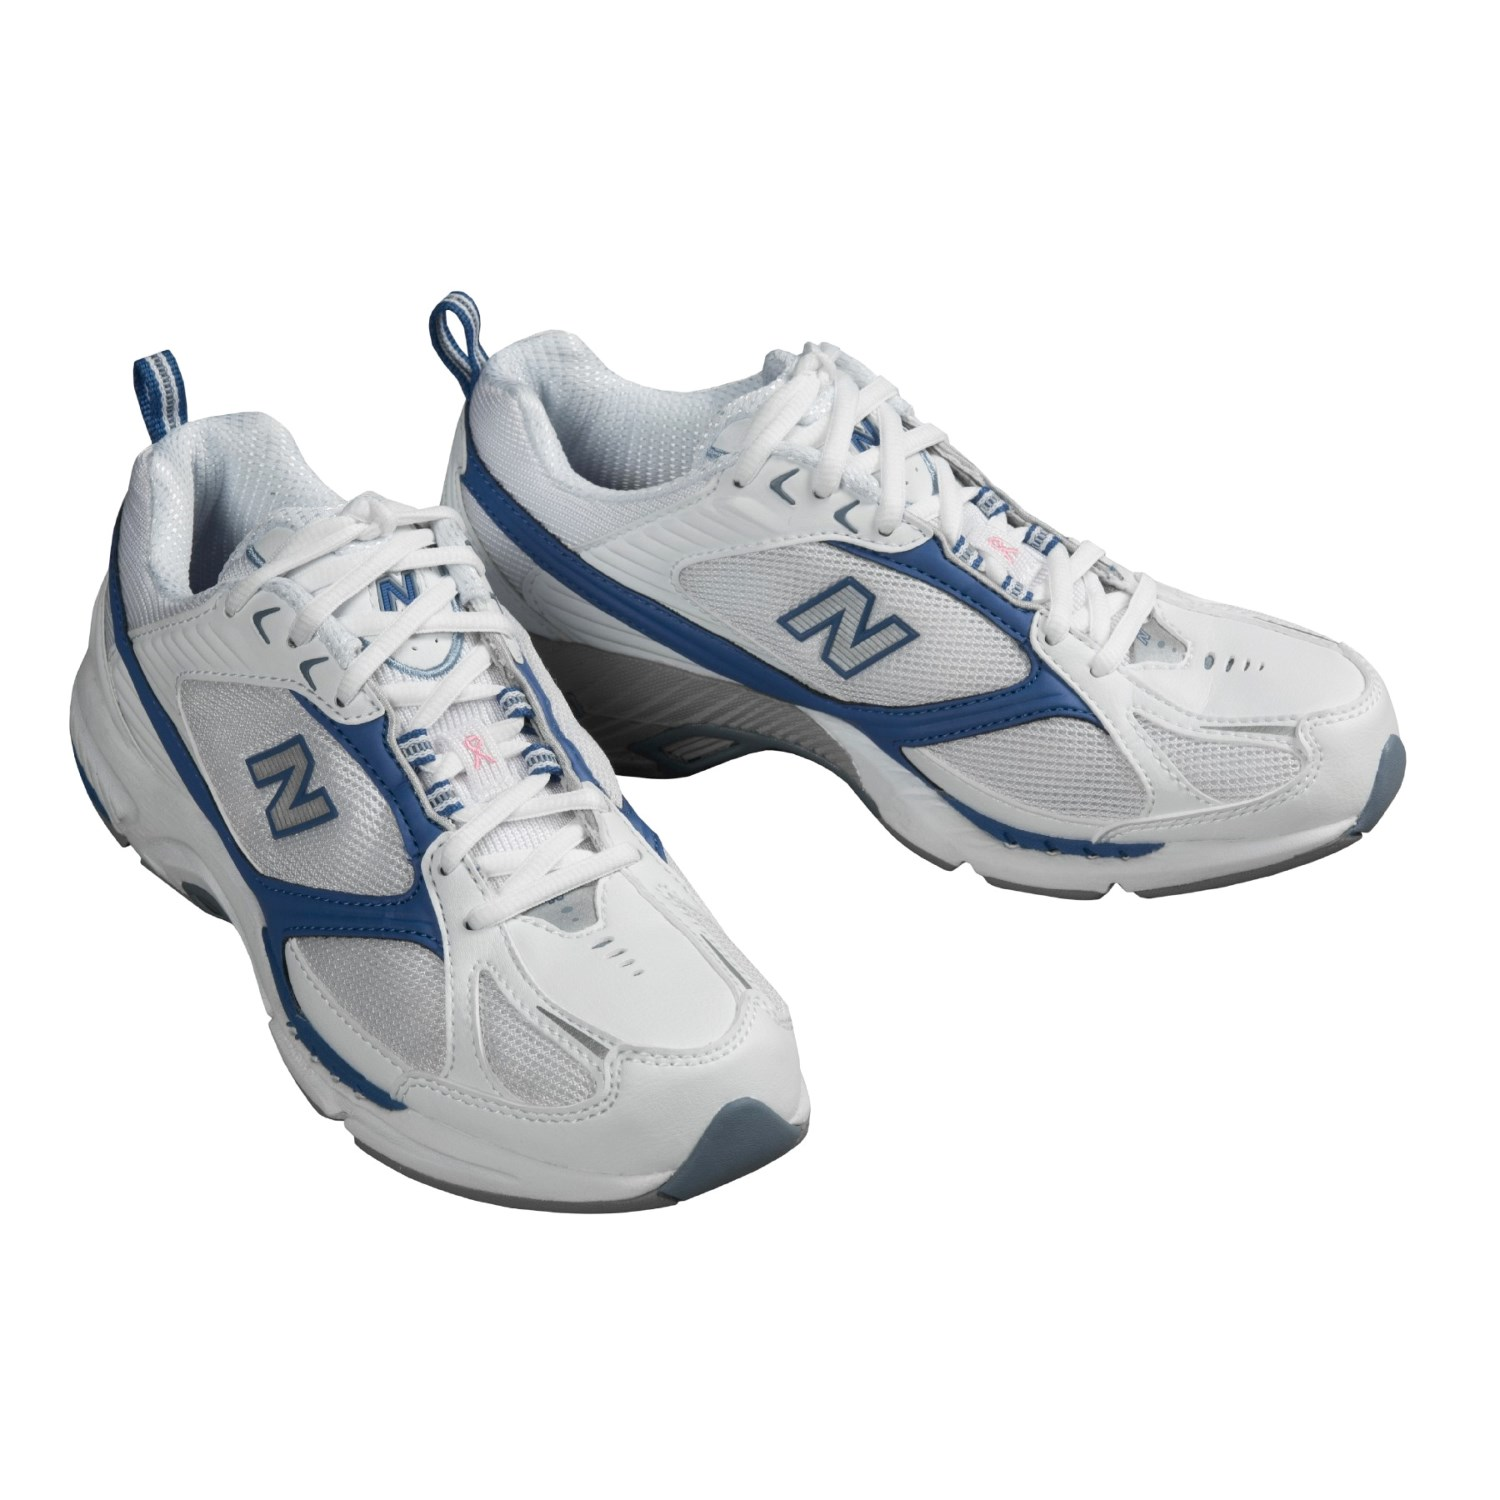 new balance walking shoes for stability philly diet